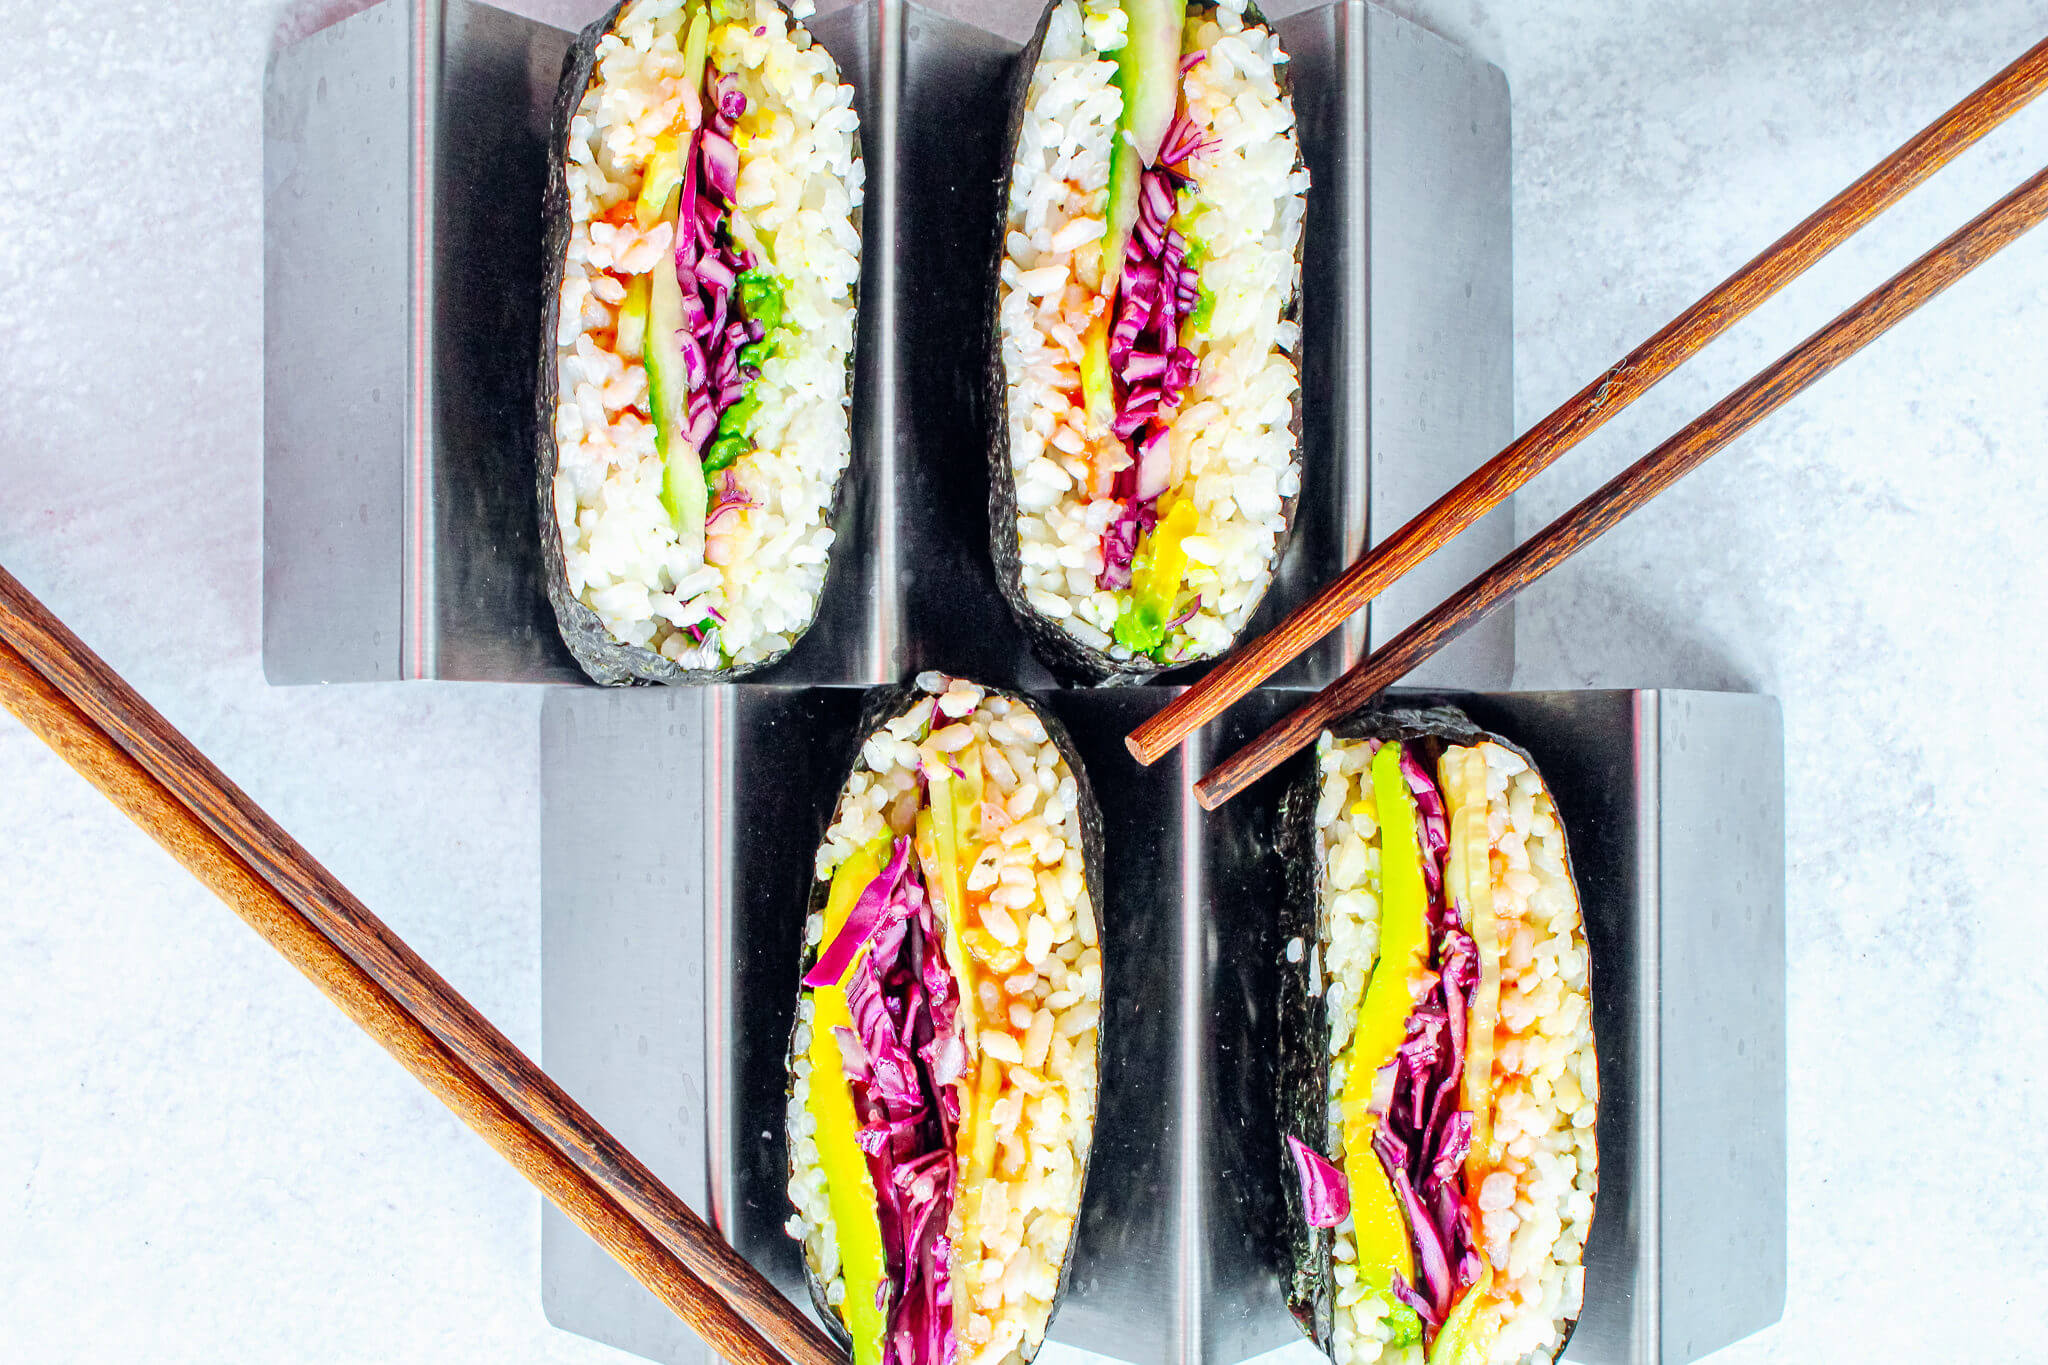 Sustainable and Plant-based Lifestyle influencer shares her delicious sushi sandwich  recipe!